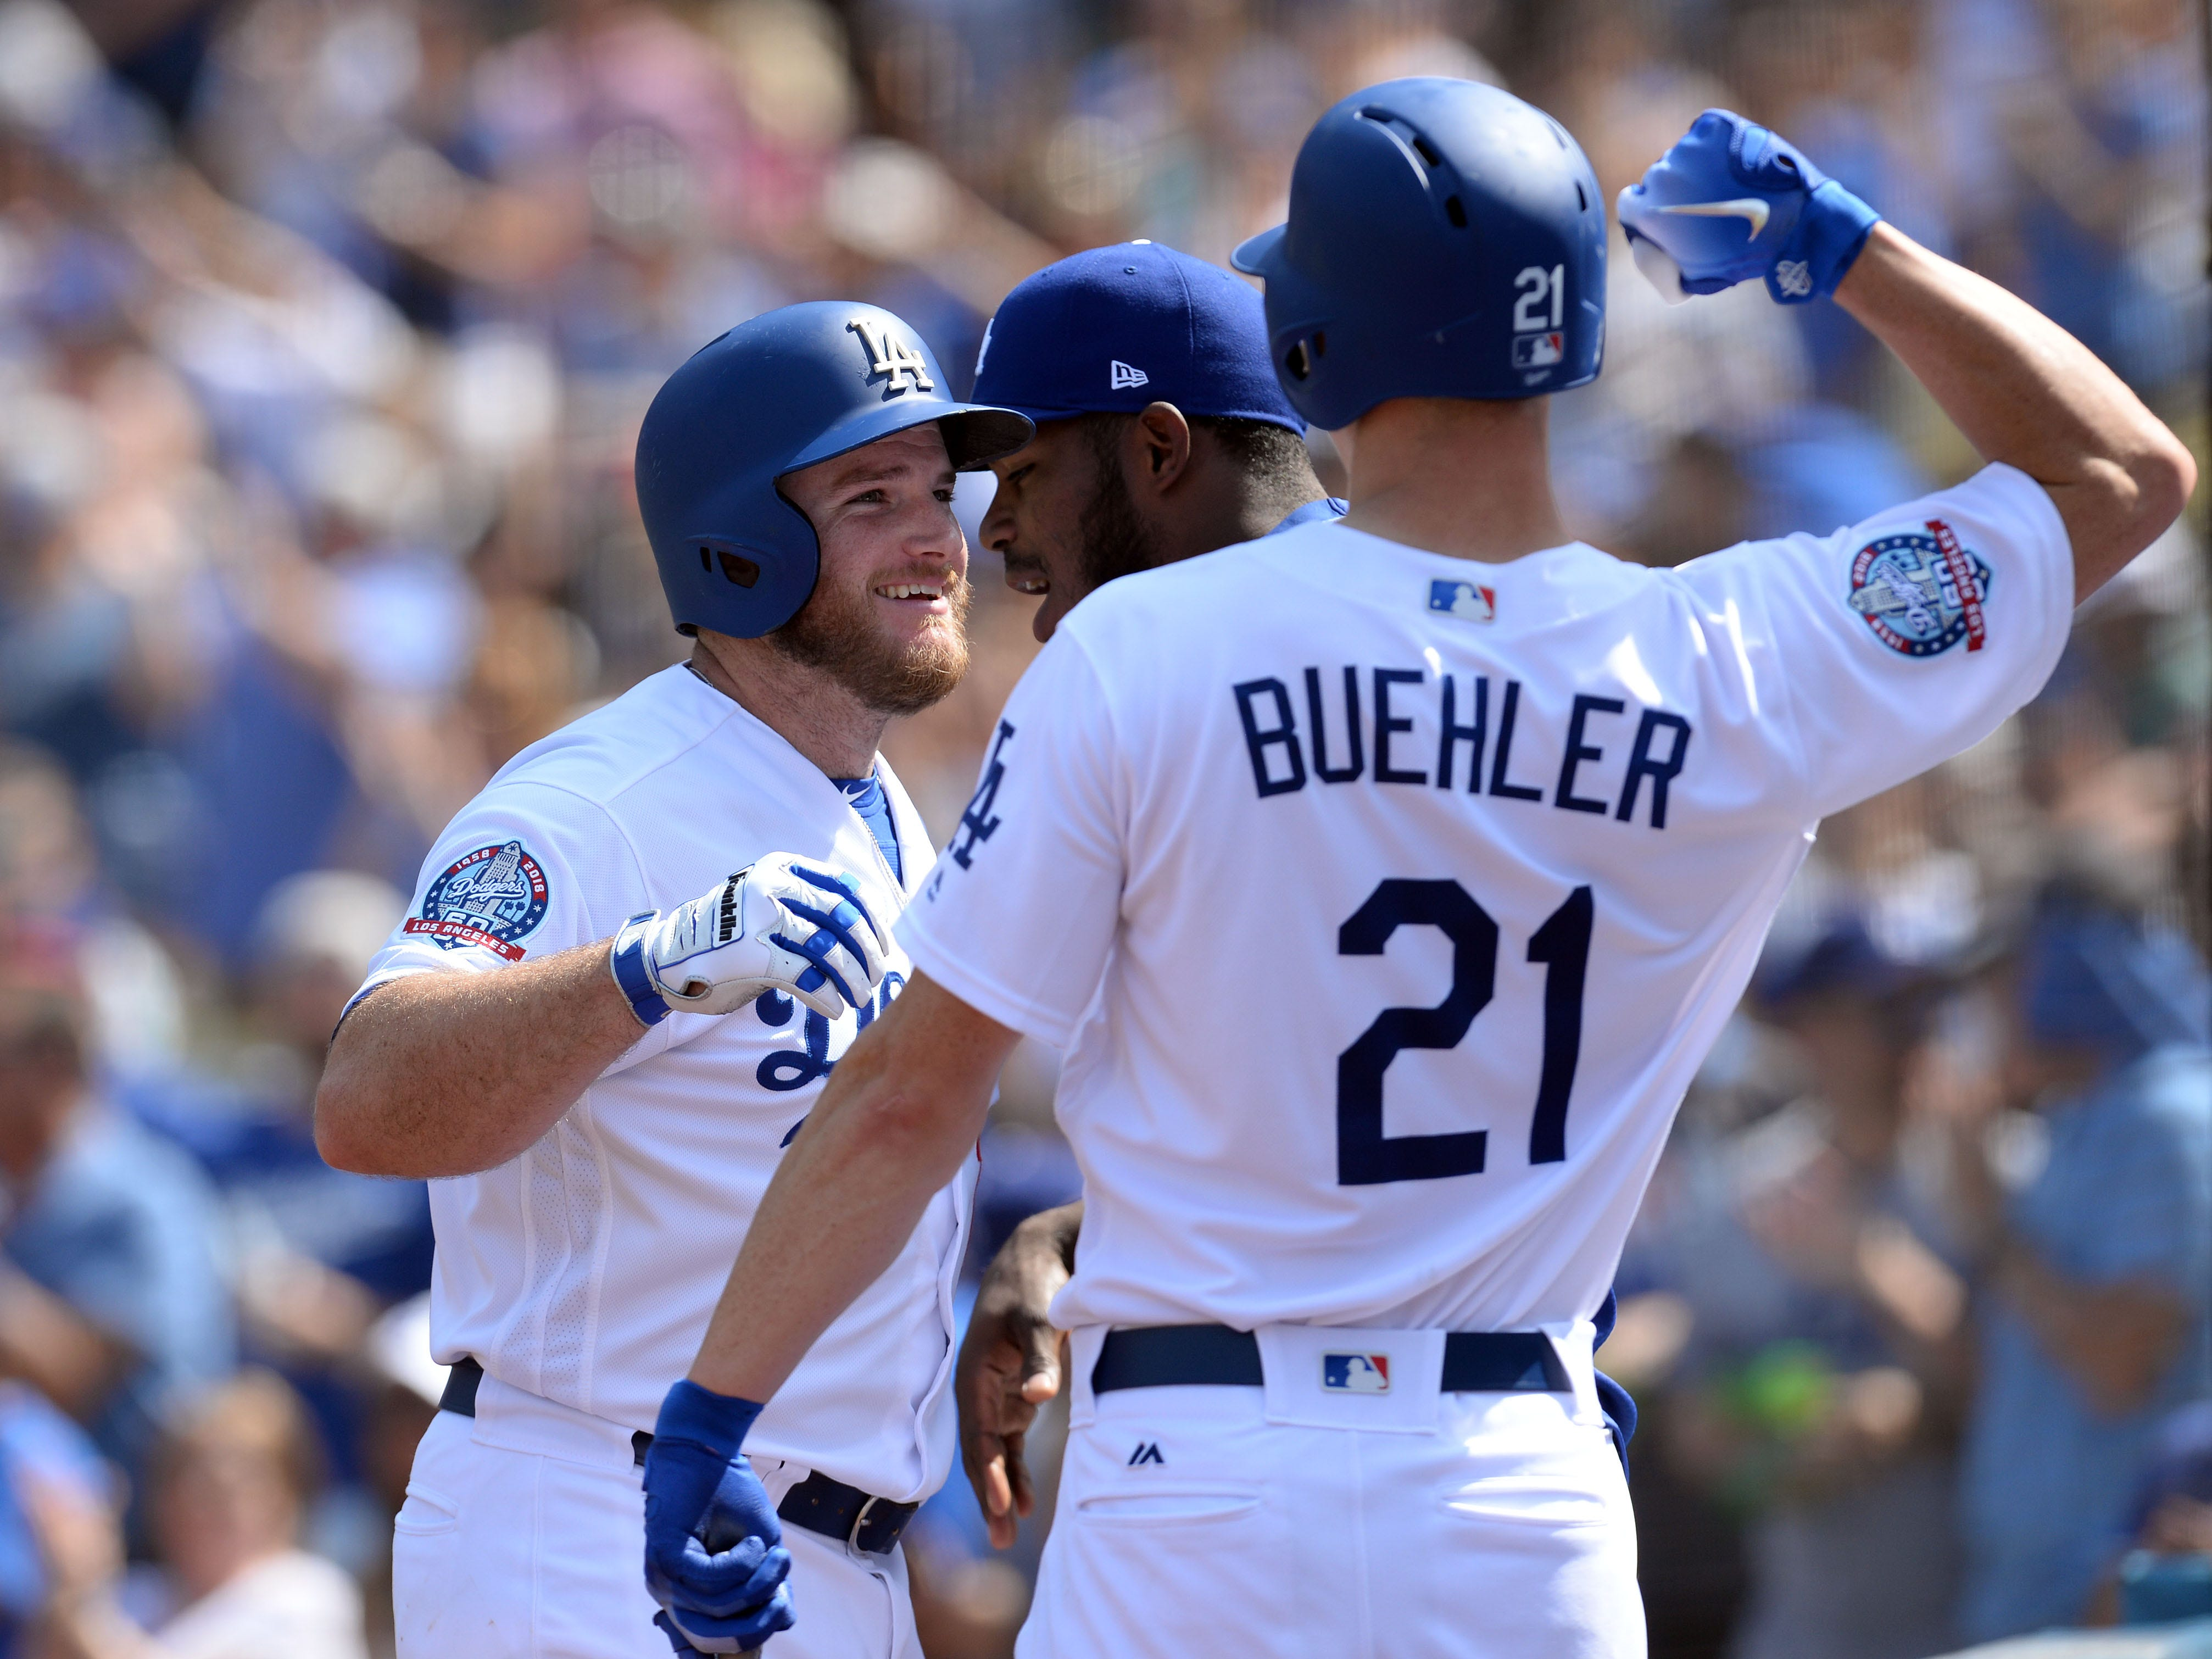 September 2, 2018; Los Angeles, CA, USA; Los Angeles Dodgers first baseman Max Muncy (13) celebrates with starting pitcher Walker Buehler (21) and right fielder Yasiel Puig (66) after hitting a solo home run against the Arizona Diamondbacks in the fifth inning at Dodger Stadium. Mandatory Credit: Gary A. Vasquez-USA TODAY Sports